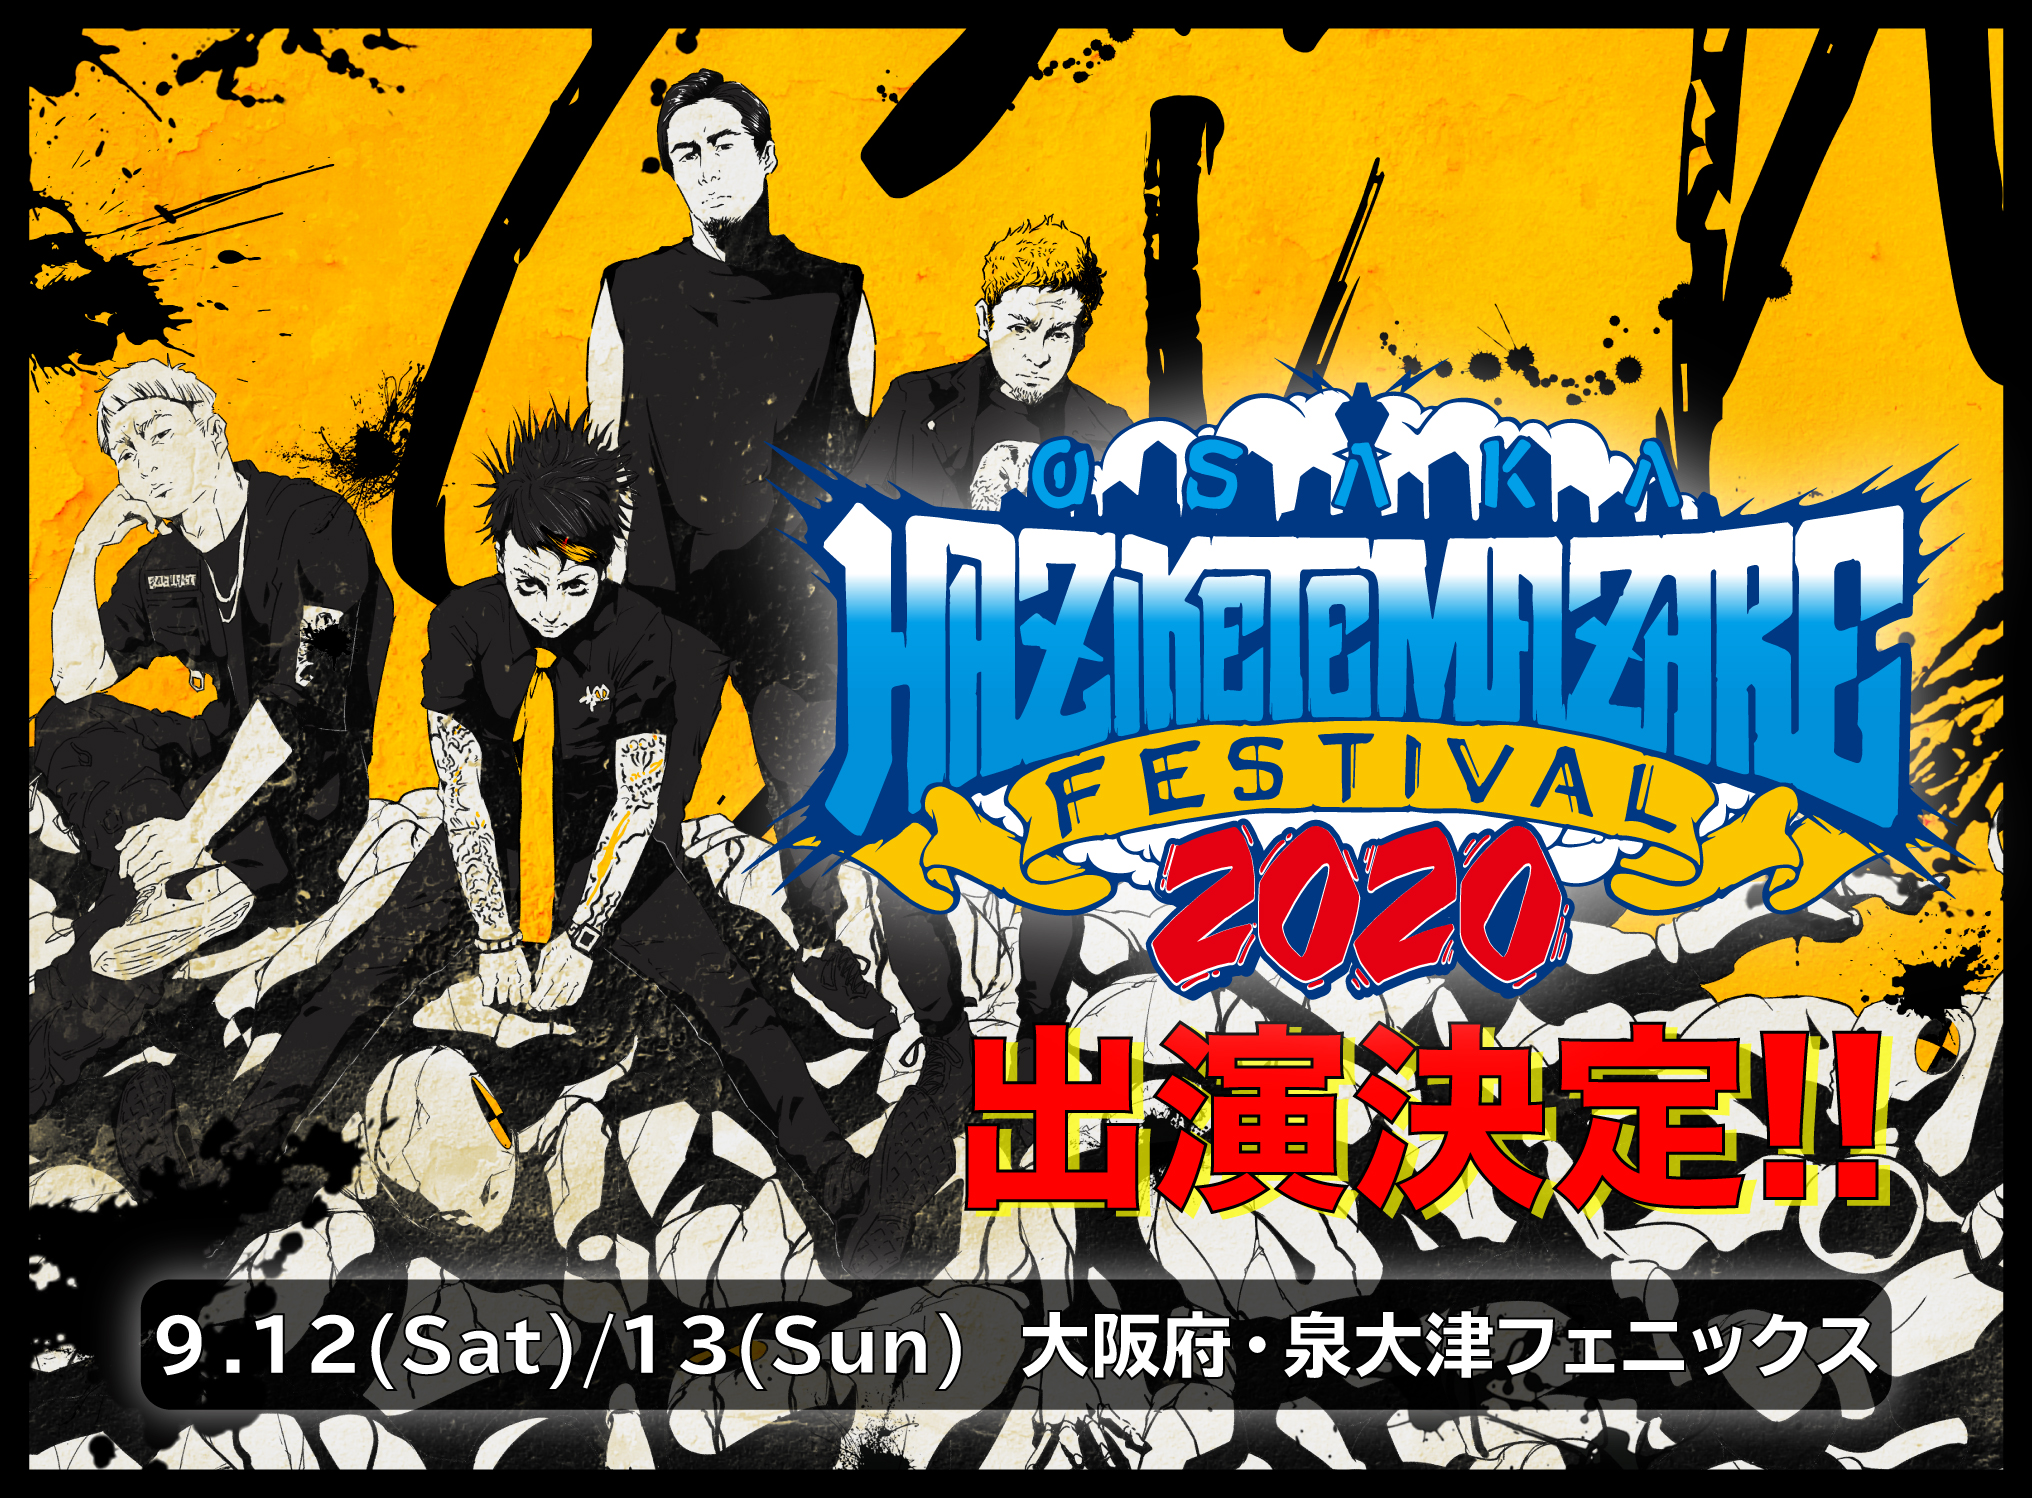 HEY-SMITH Presents OSAKA HAZIKETEMAZARE FESTIVAL 2020